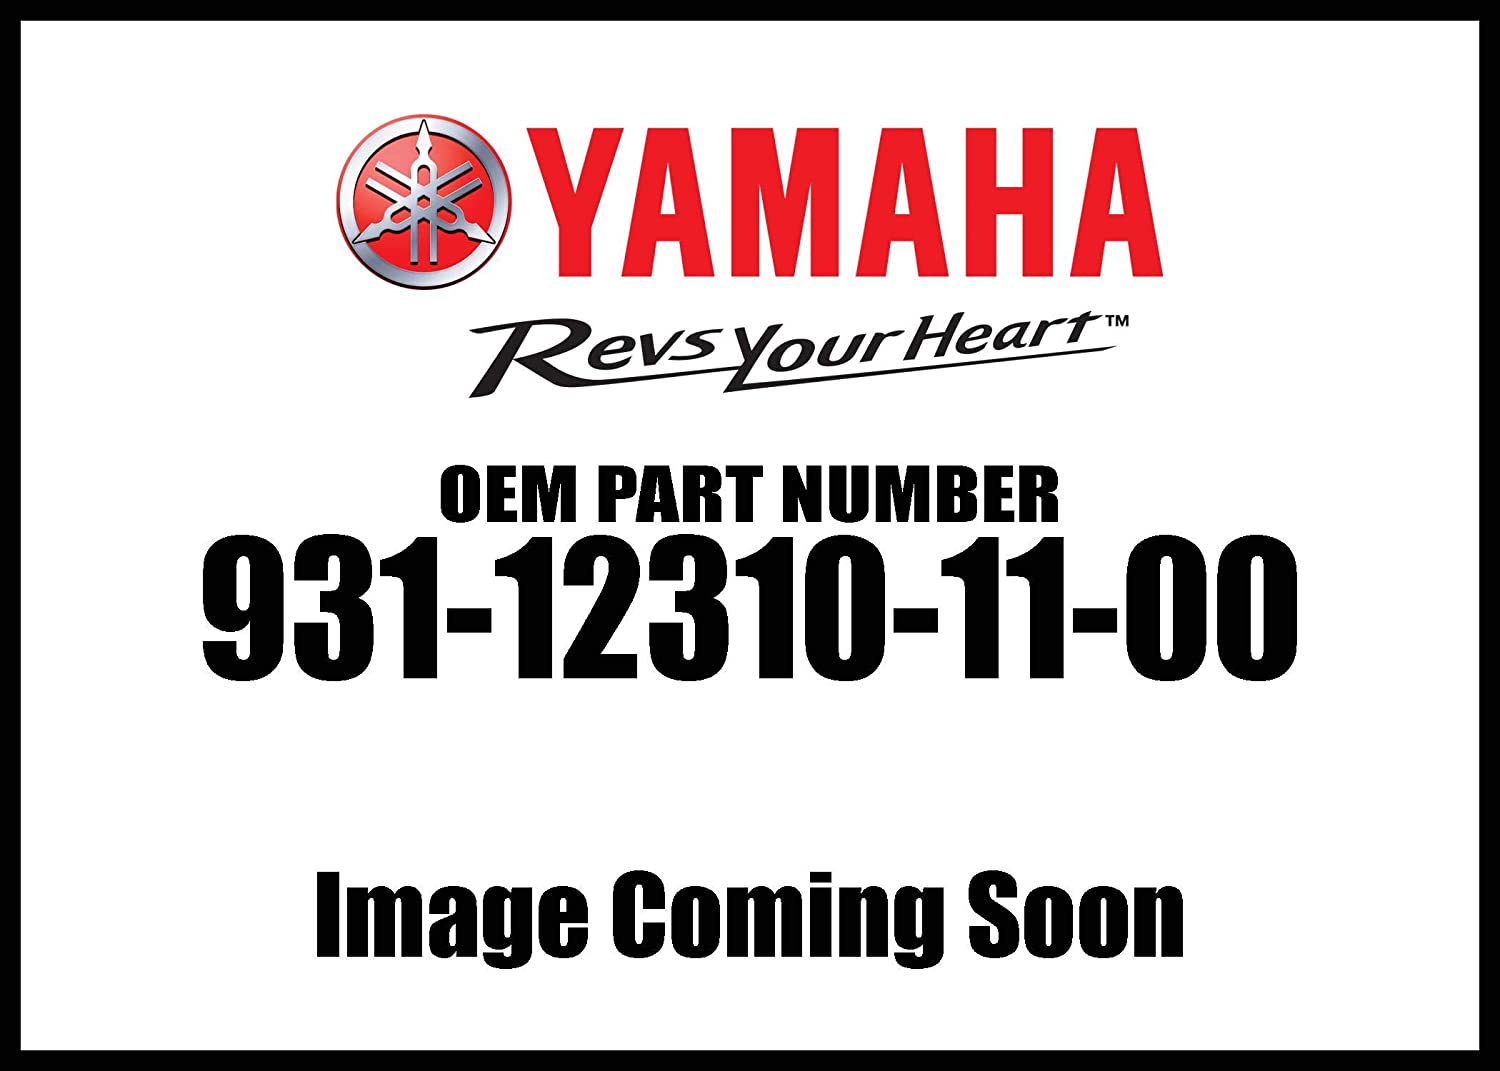 Yamaha 93112-31011-00 OIL SEAL (1UY); 931123101100